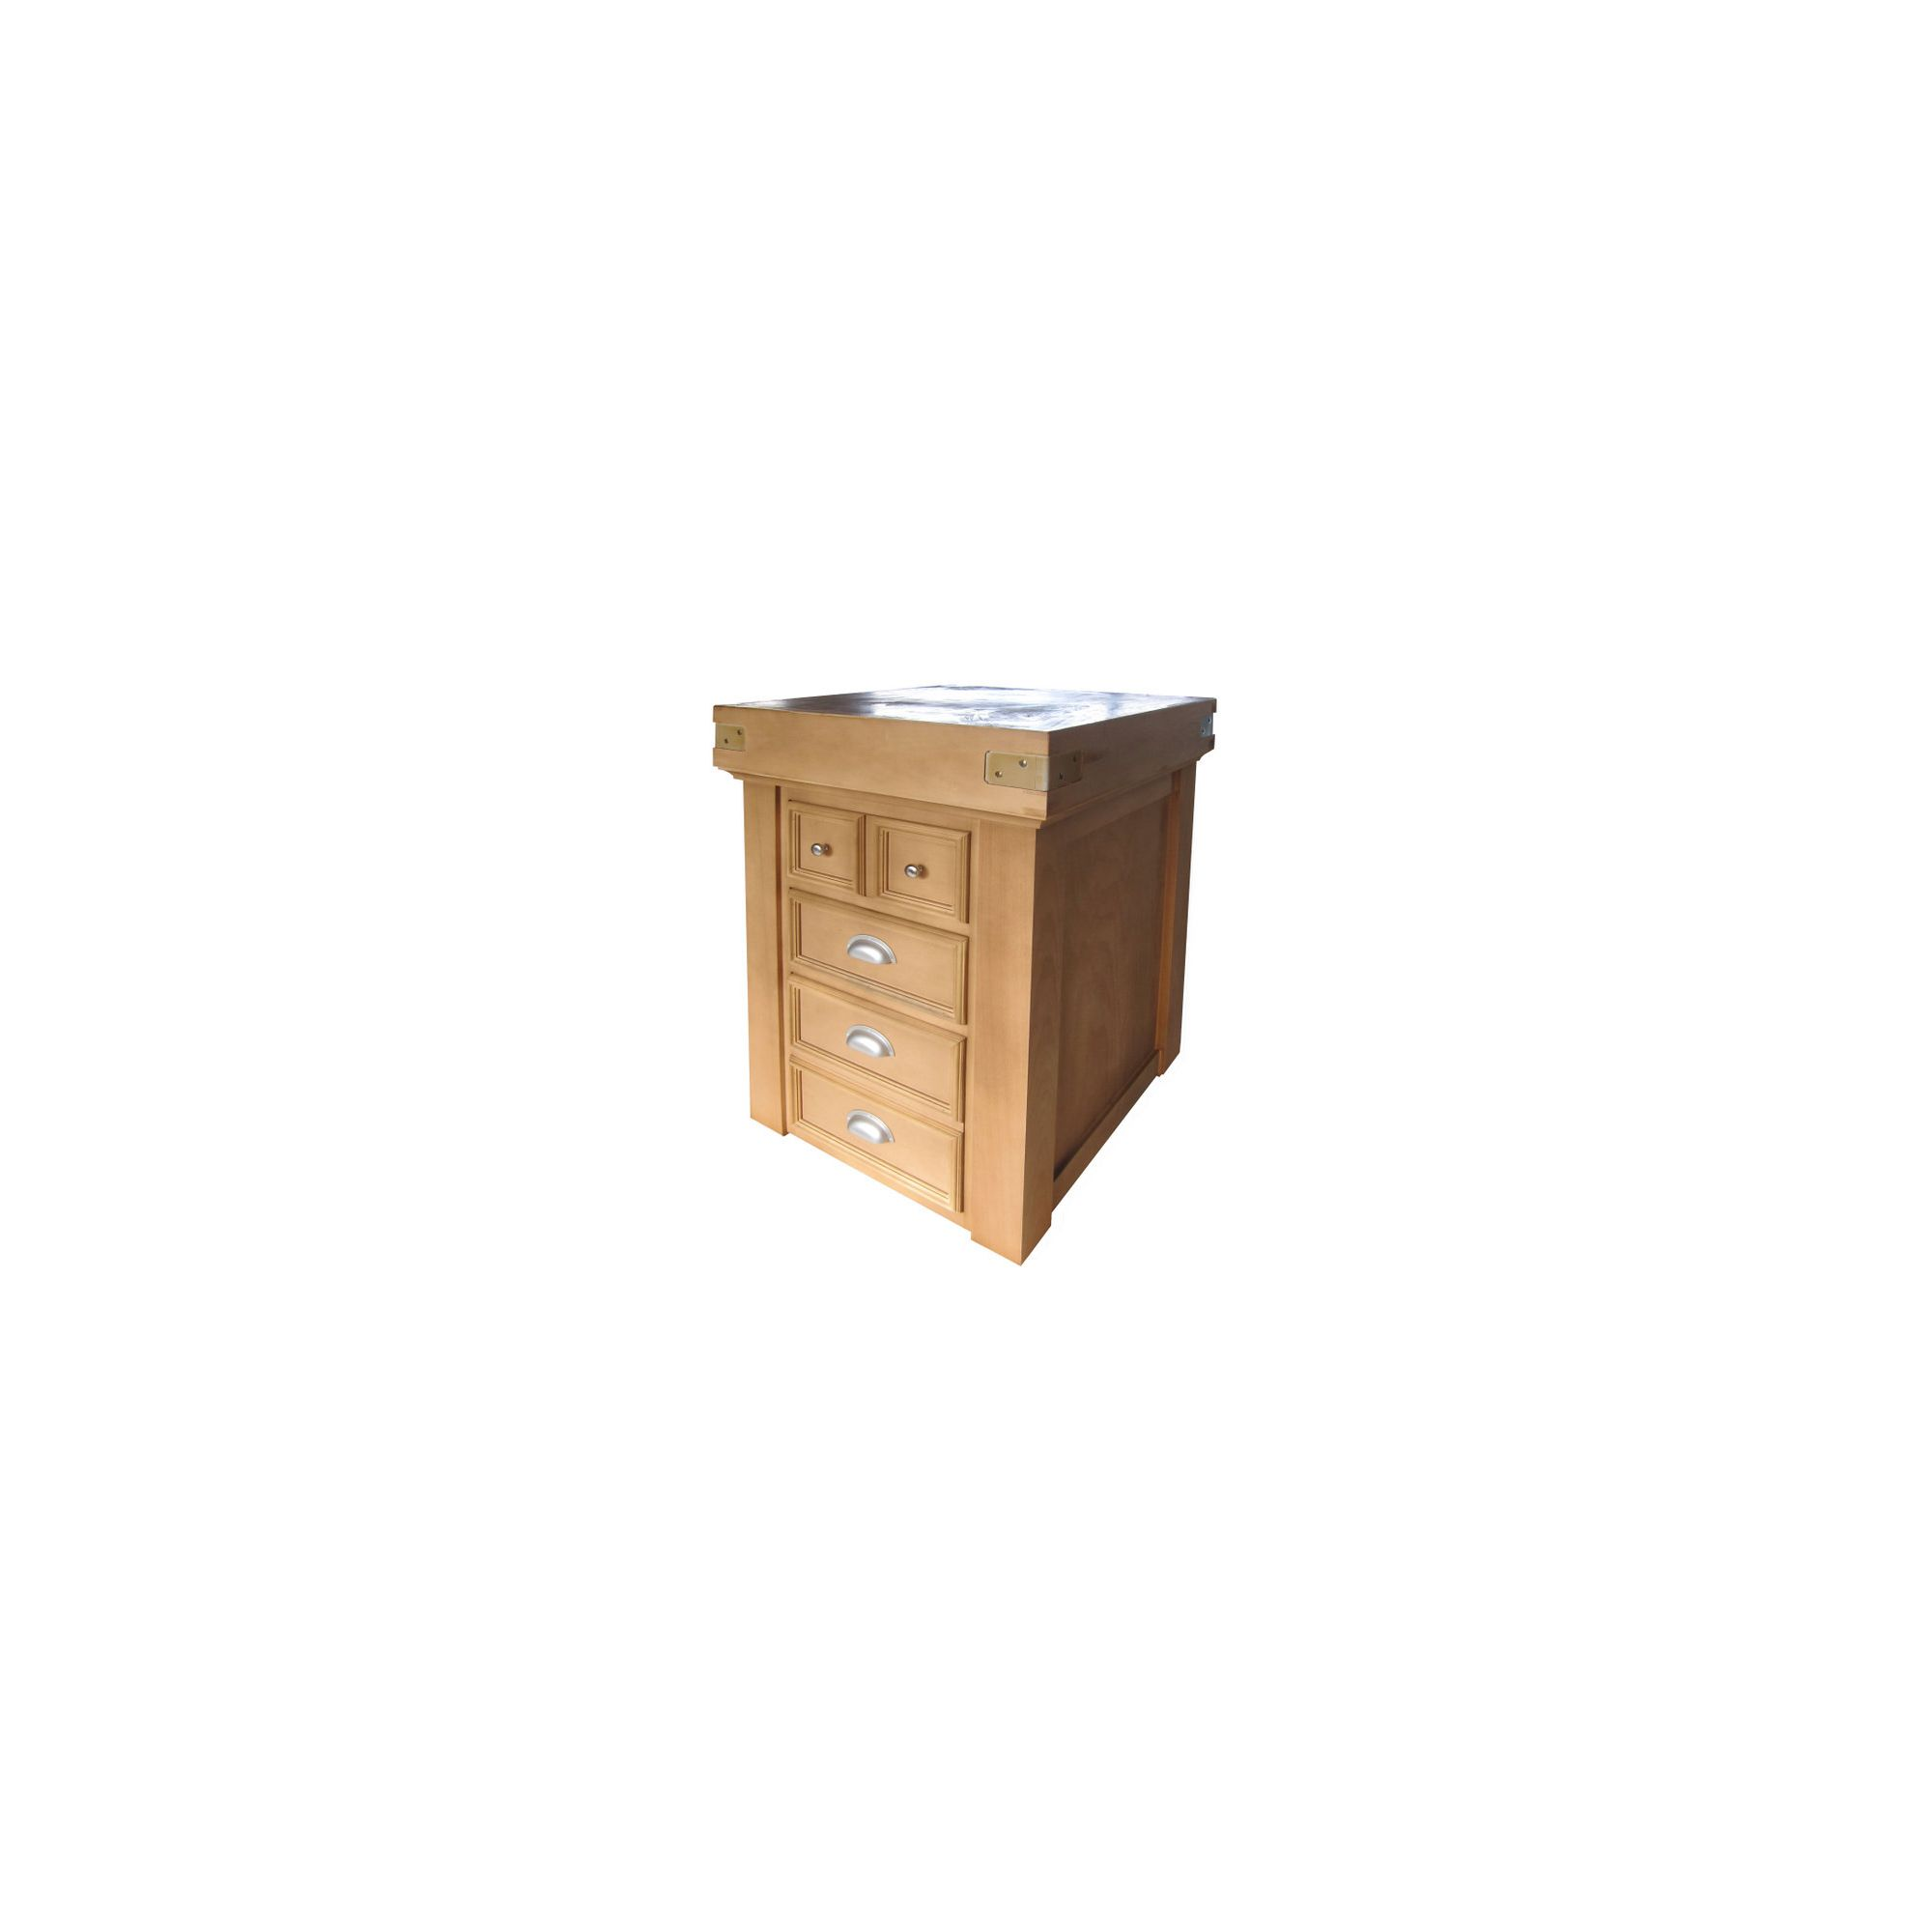 Chabret Traditional Drawers Block - 110cm X 80cm X 60cm at Tesco Direct